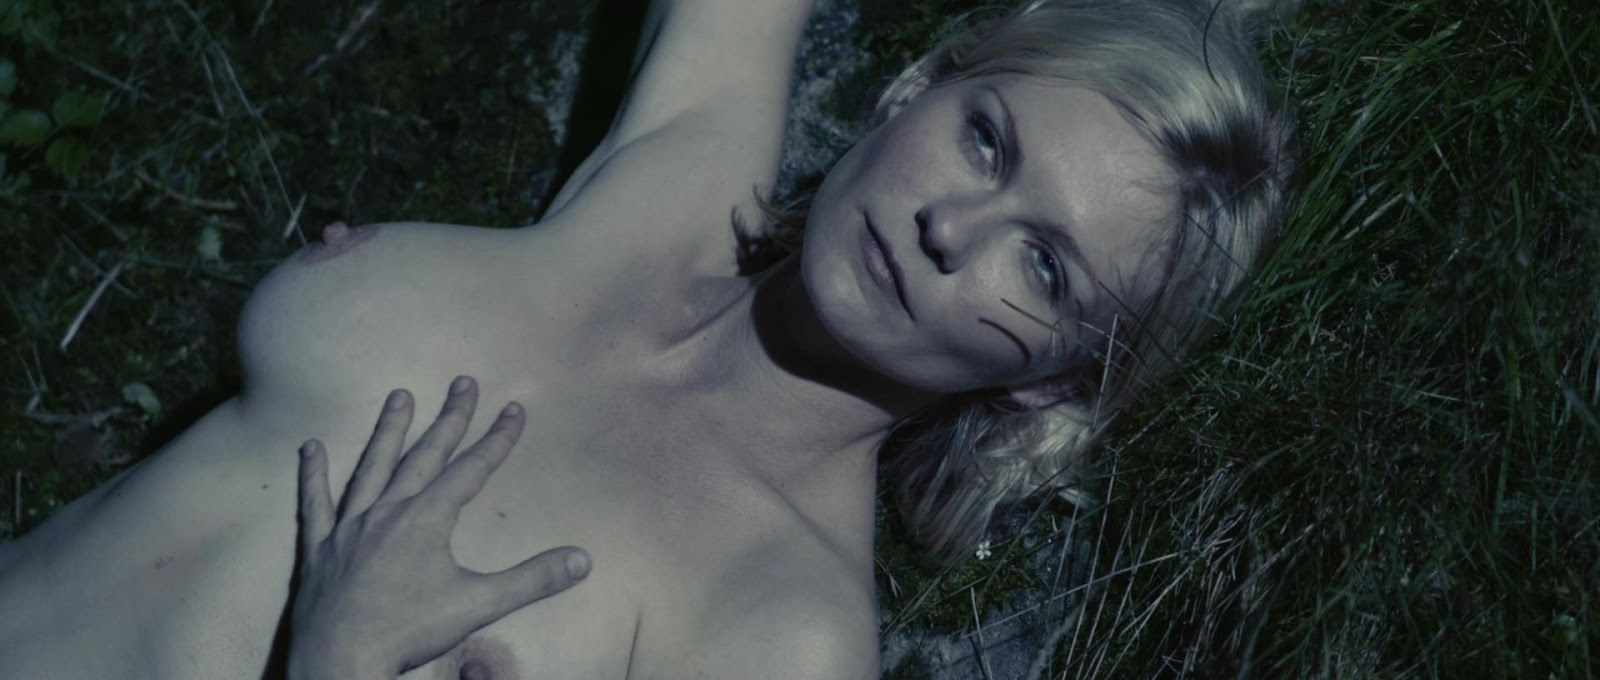 Kirsten Dunst Melancholia Hd P Hot Movie Scene